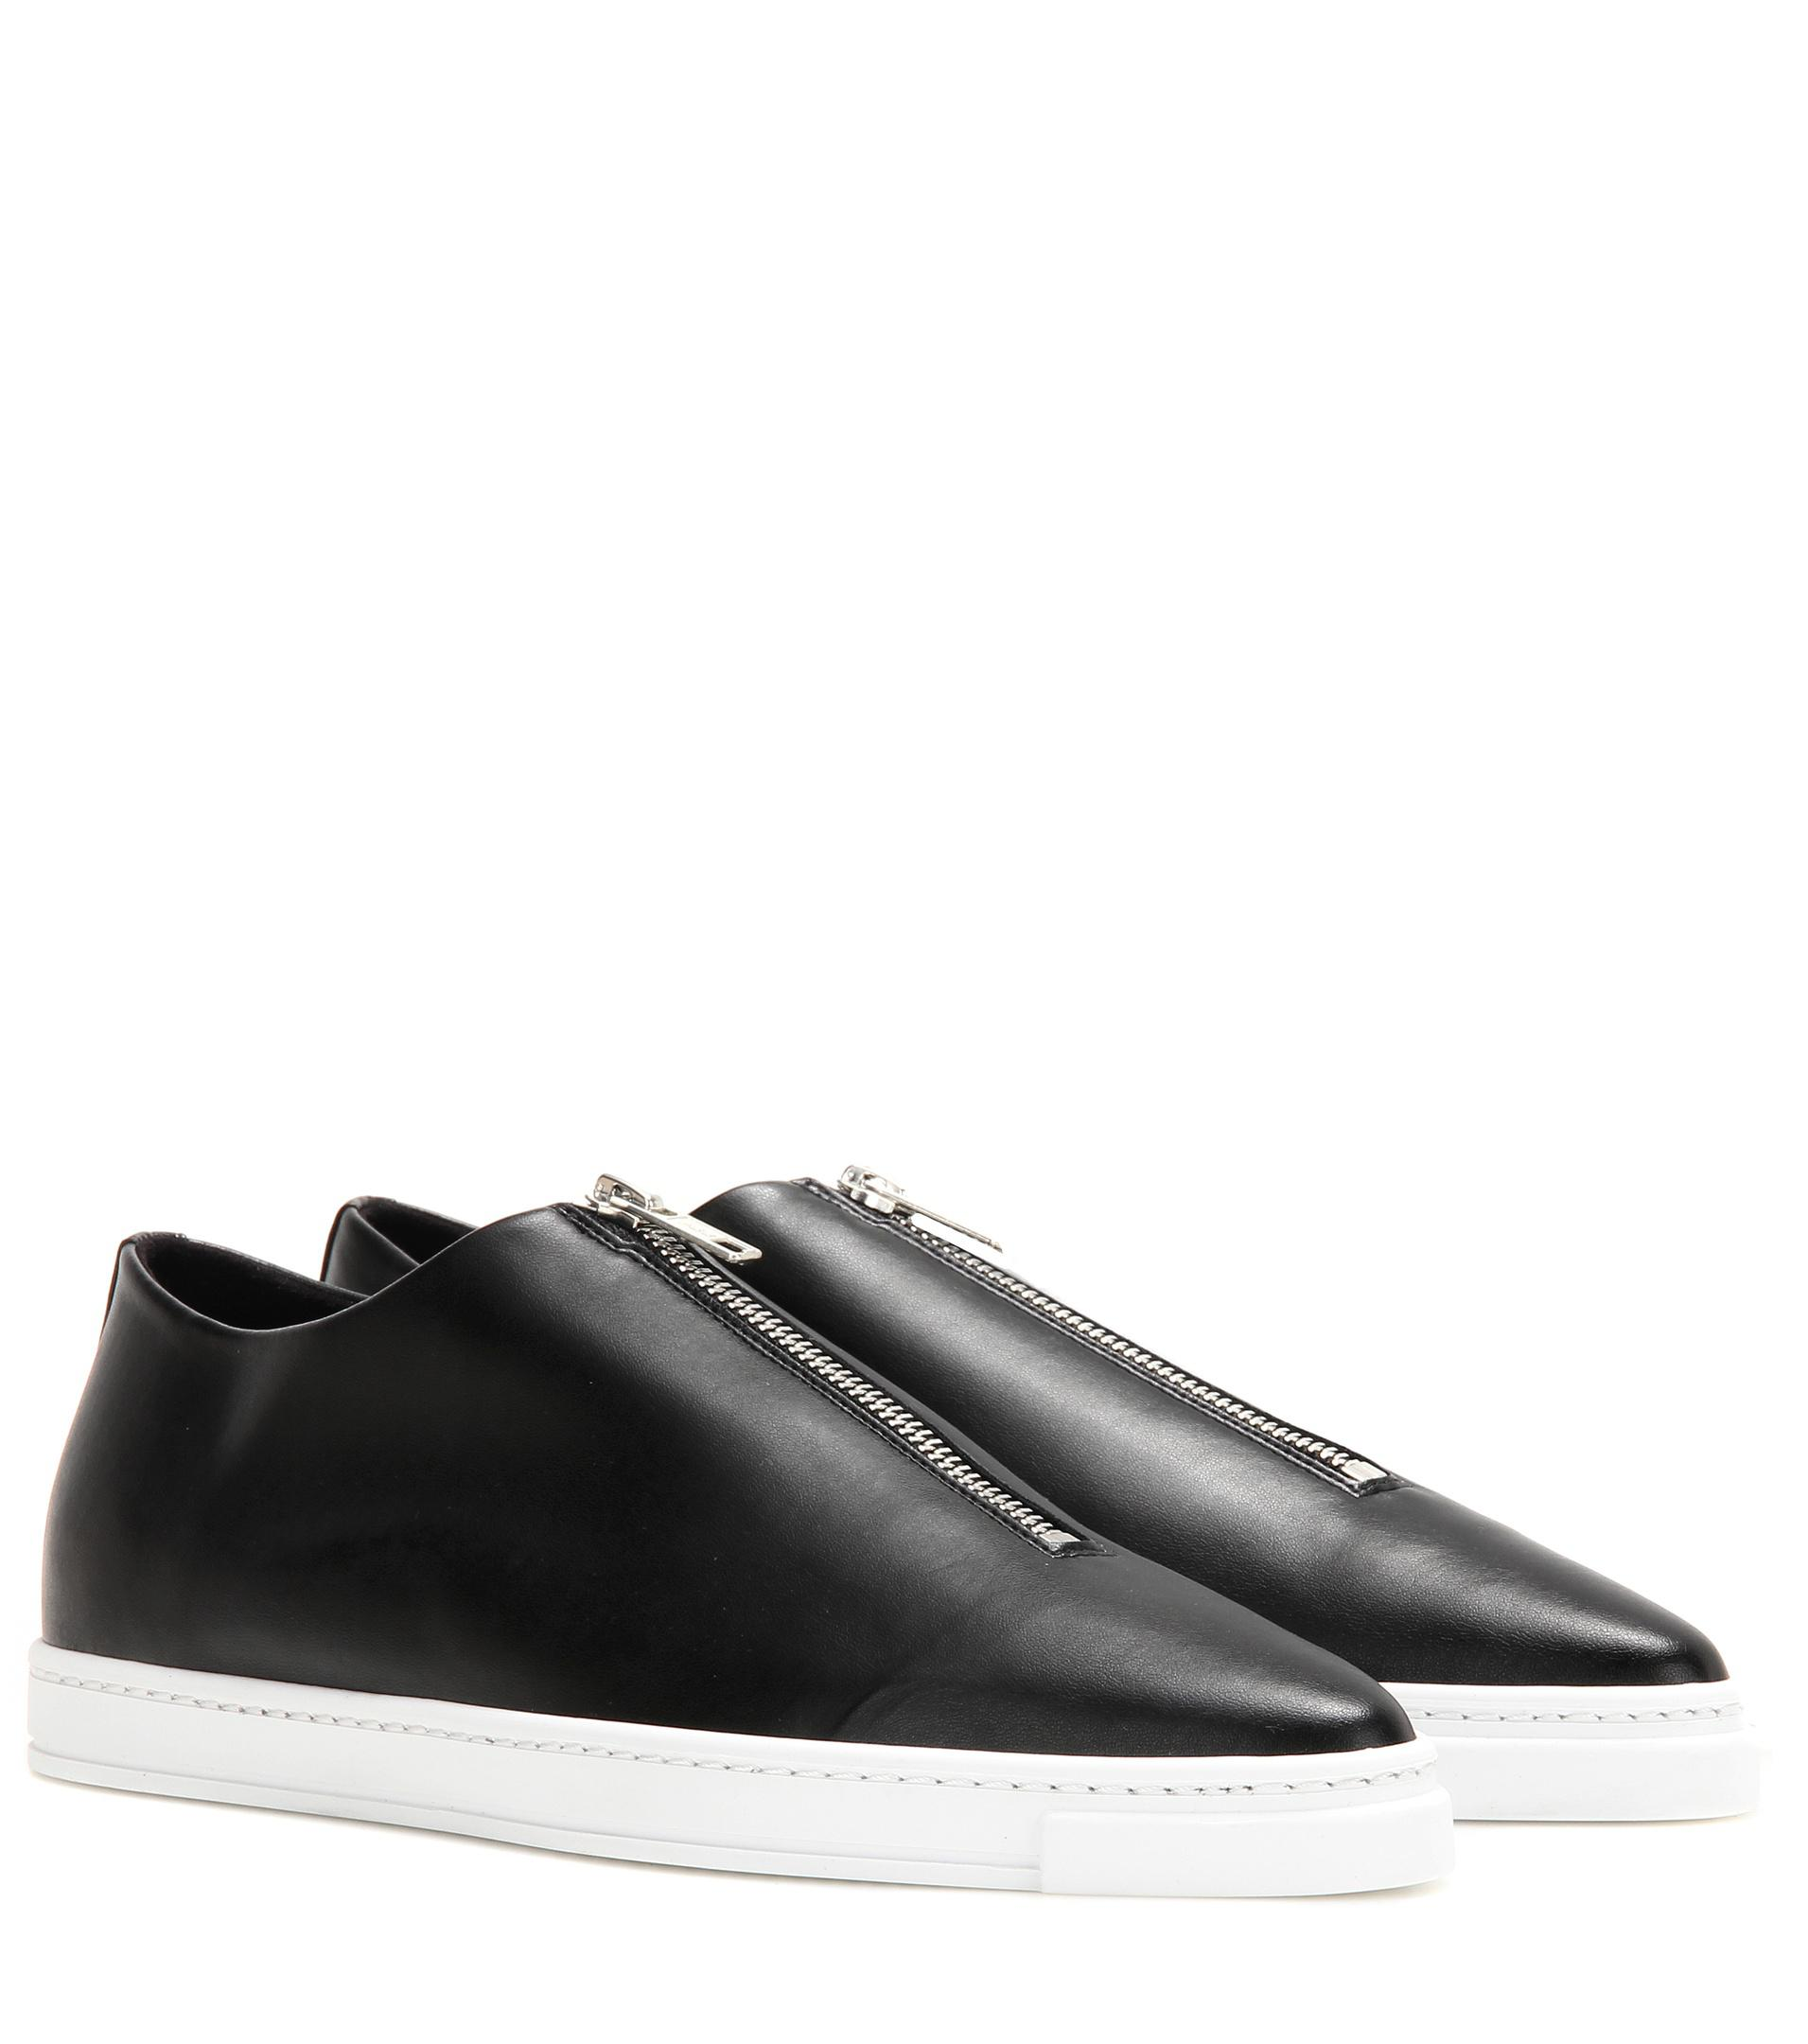 free shipping authentic Stella McCartney Vegan Leather Slip-On Sneakers outlet free shipping ExQUWQy